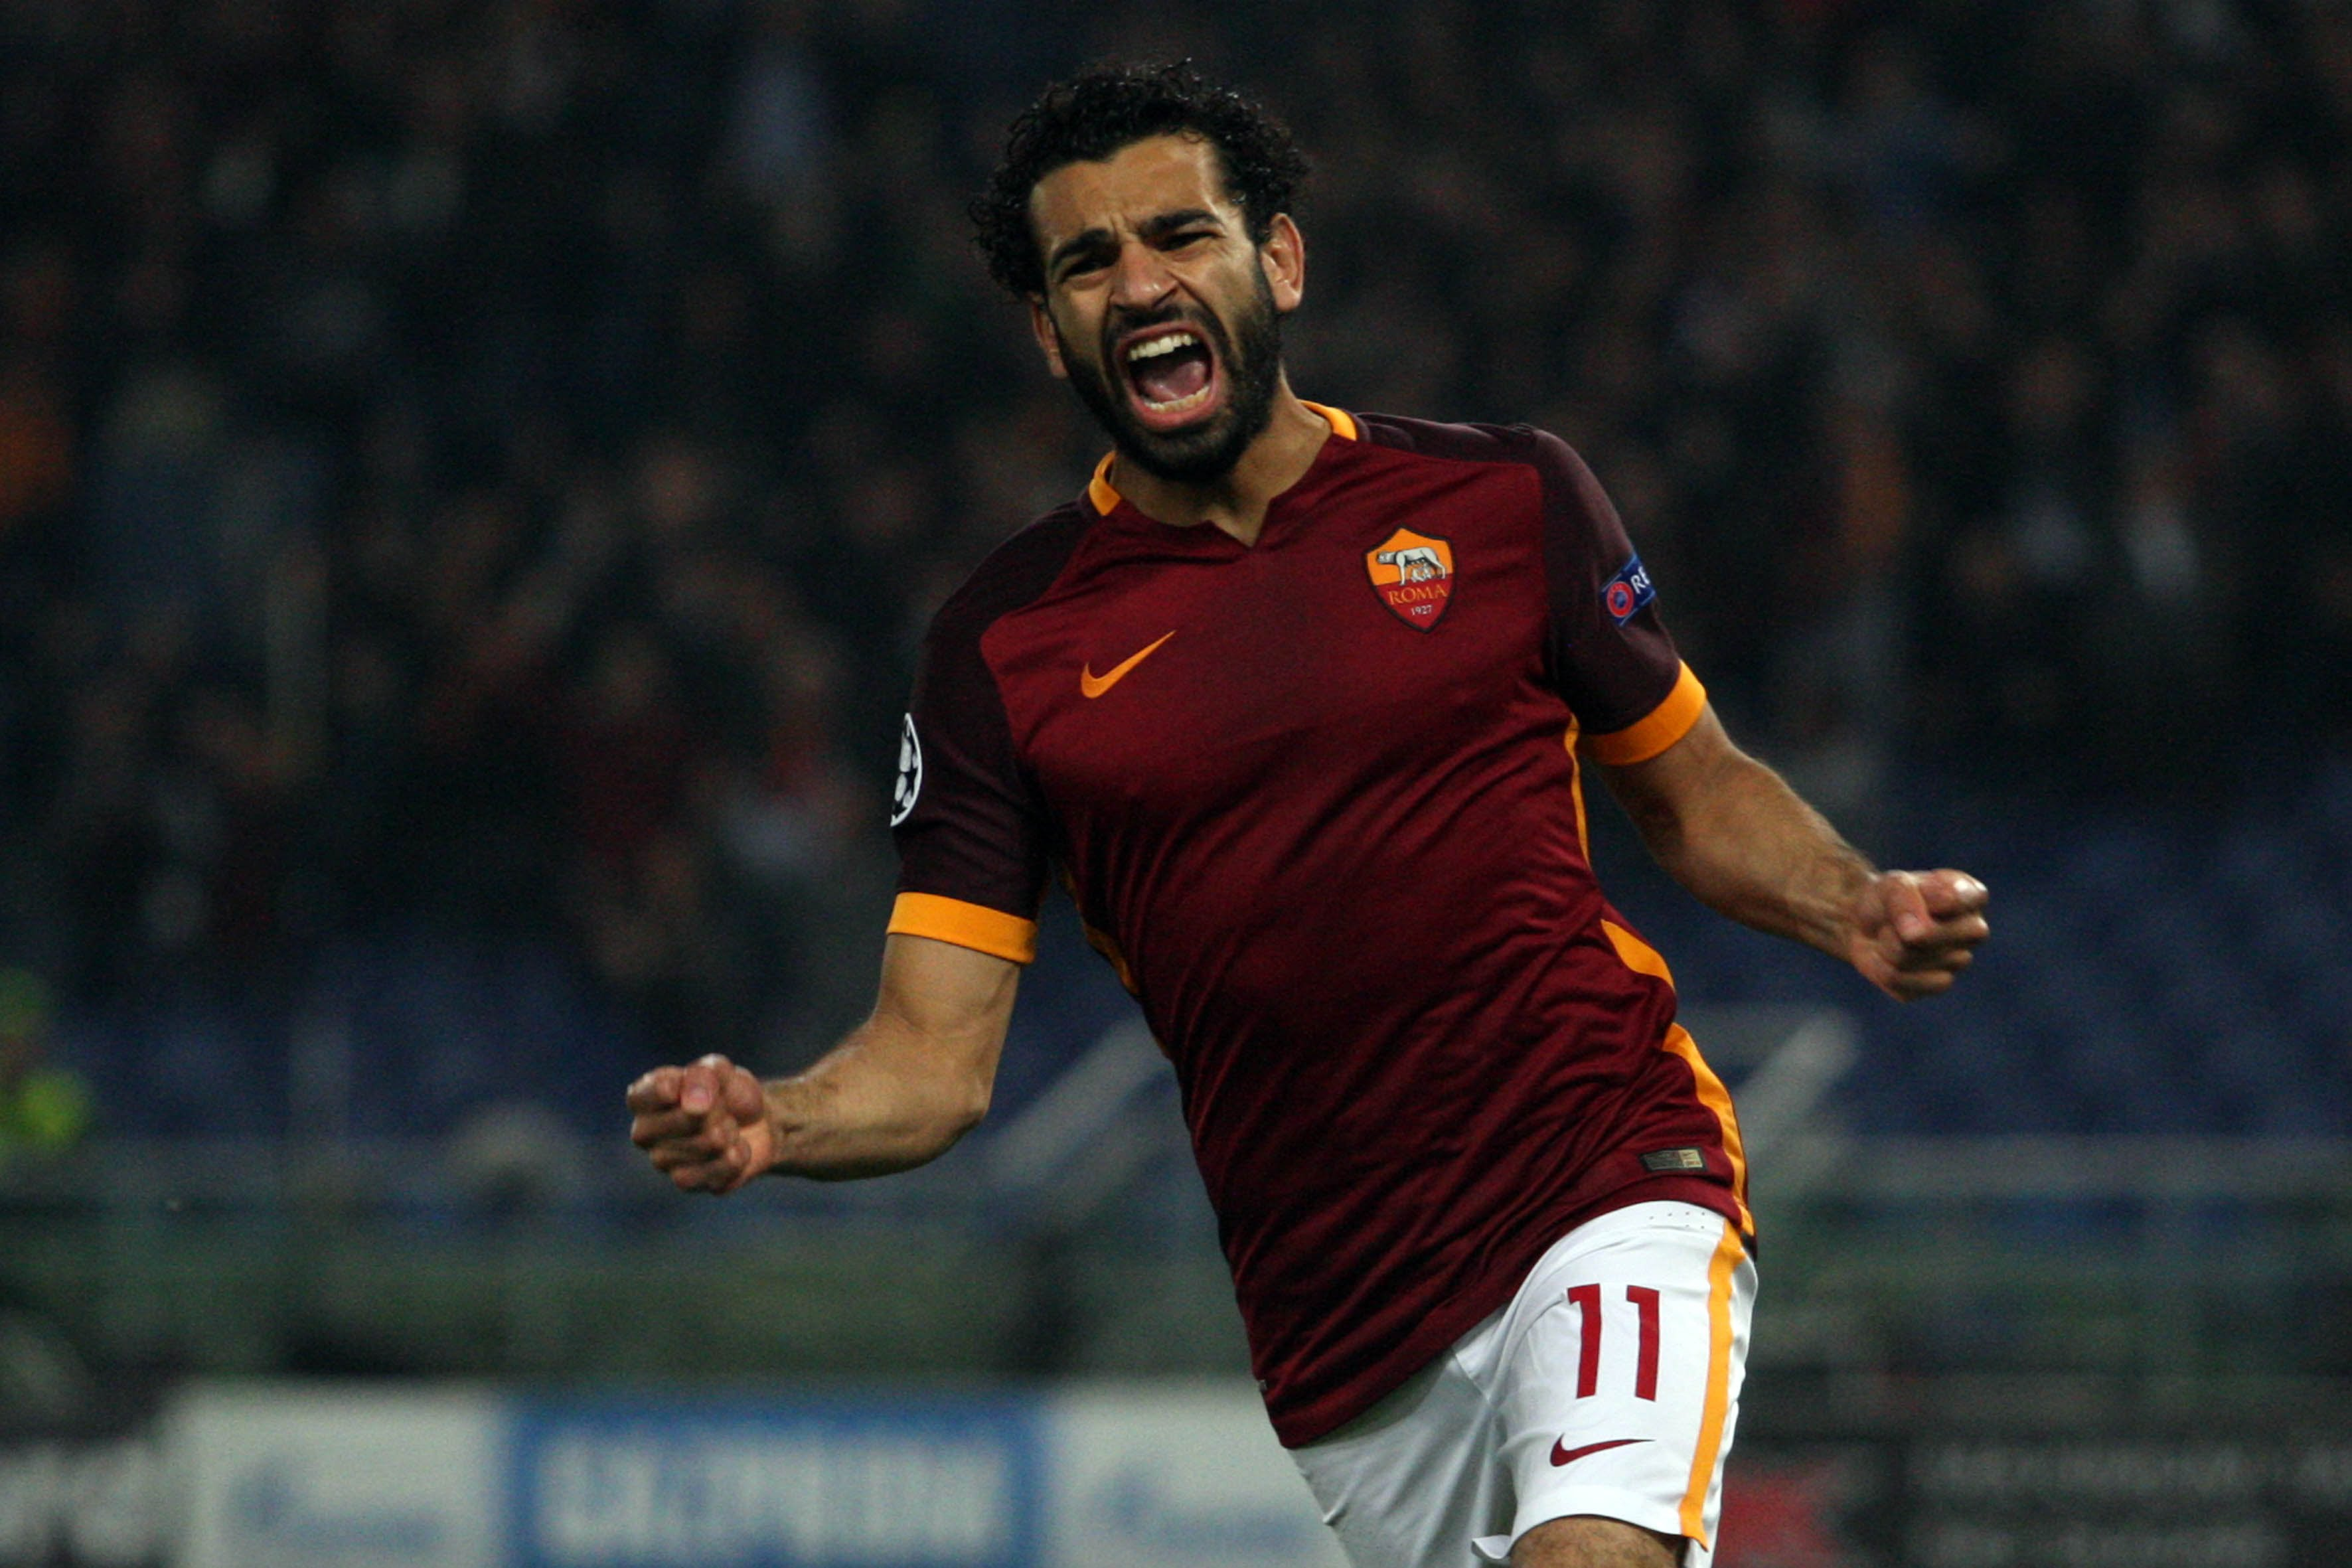 roma football team player